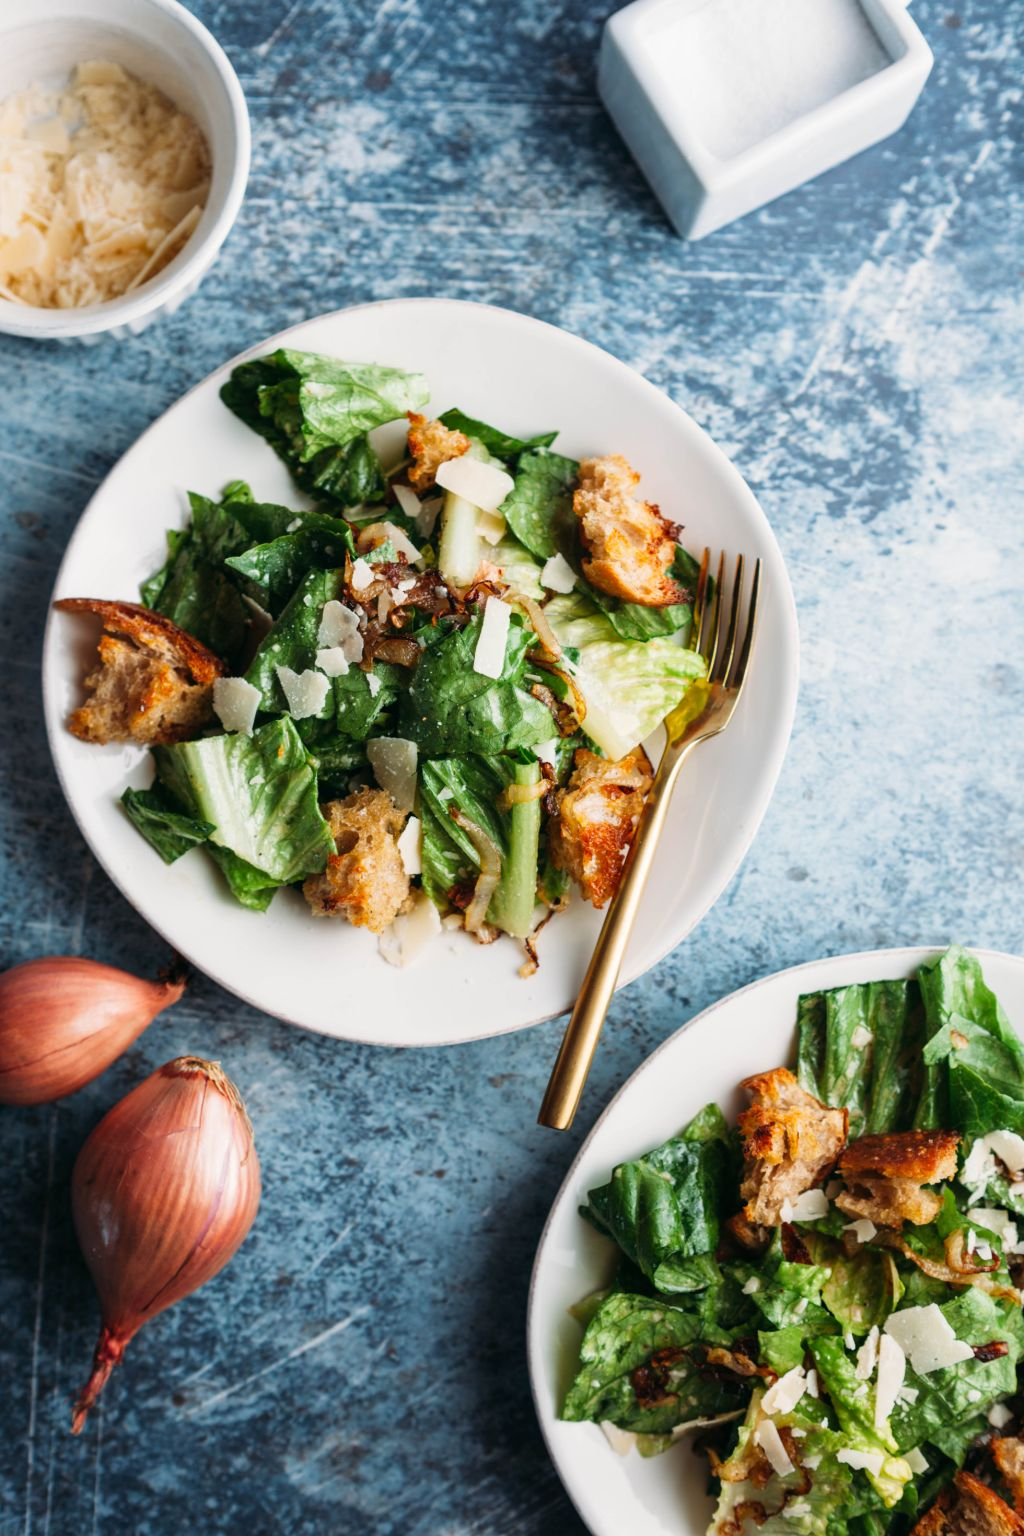 Salad with Crispy Shallots and Homemade Croutons - Tastemaker Blog